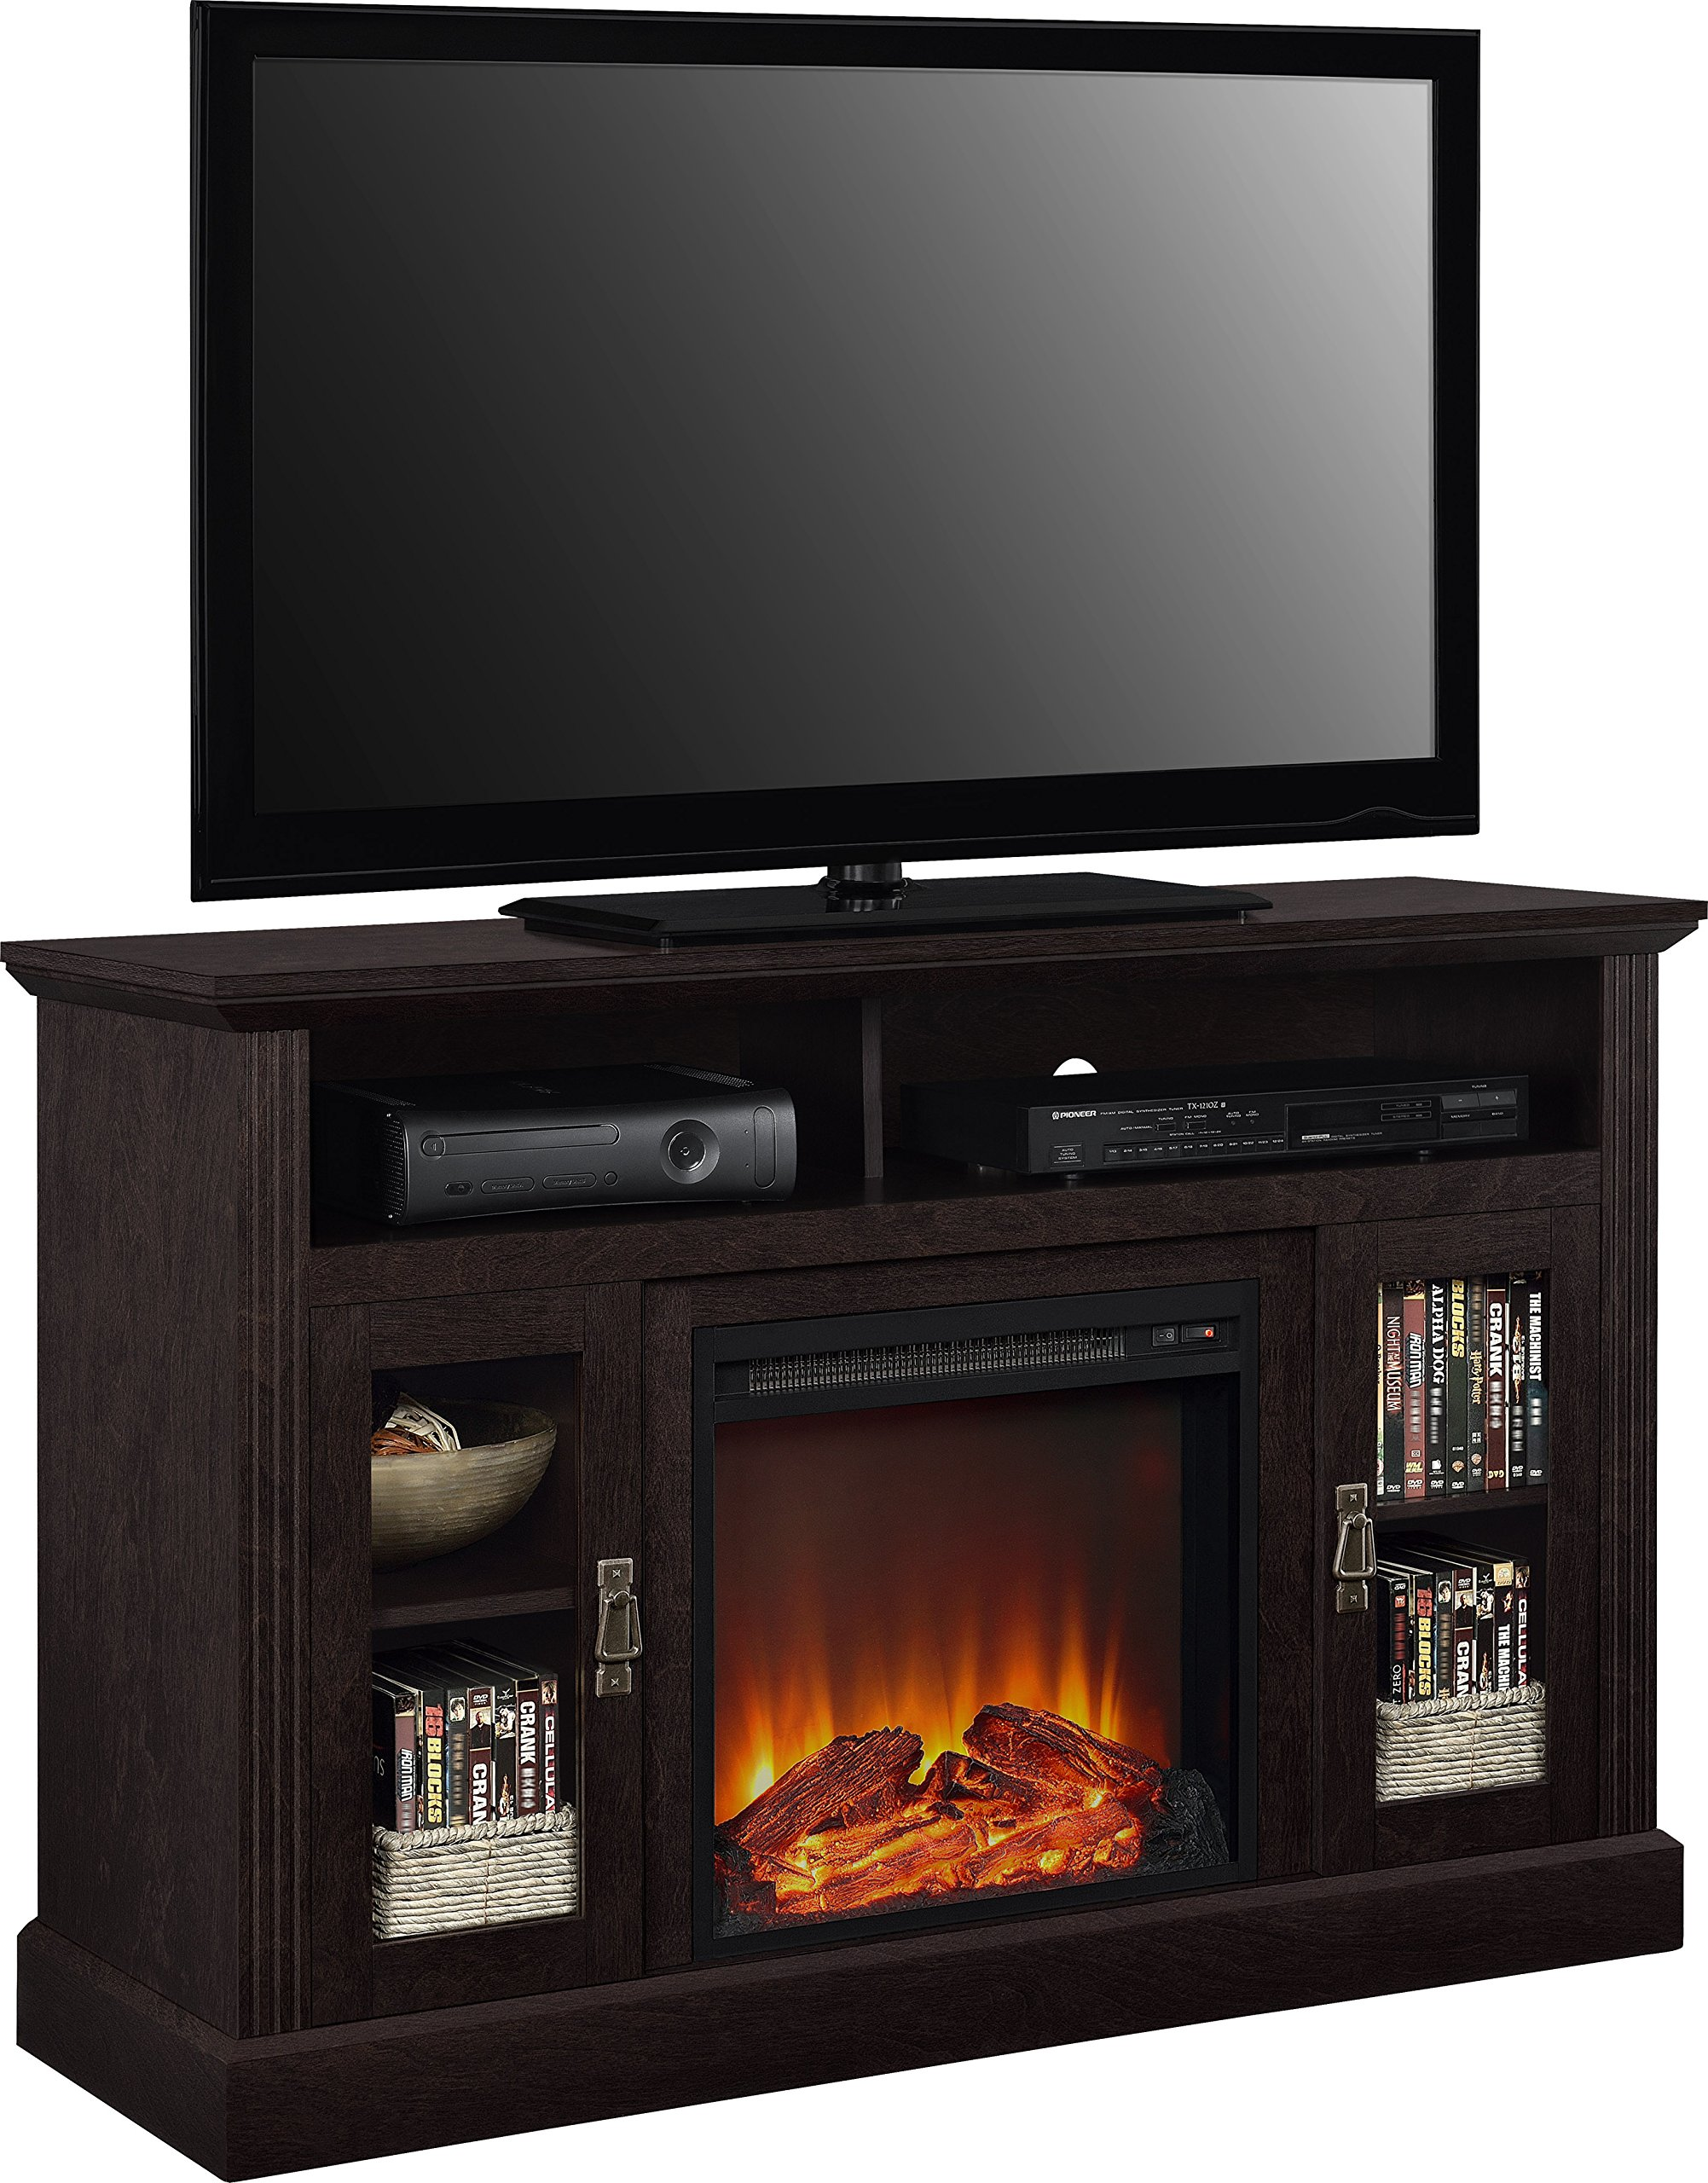 Ameriwood Home Chicago Electric Fireplace TV Console for TVs up to a 50'', Espresso by Ameriwood Home (Image #6)